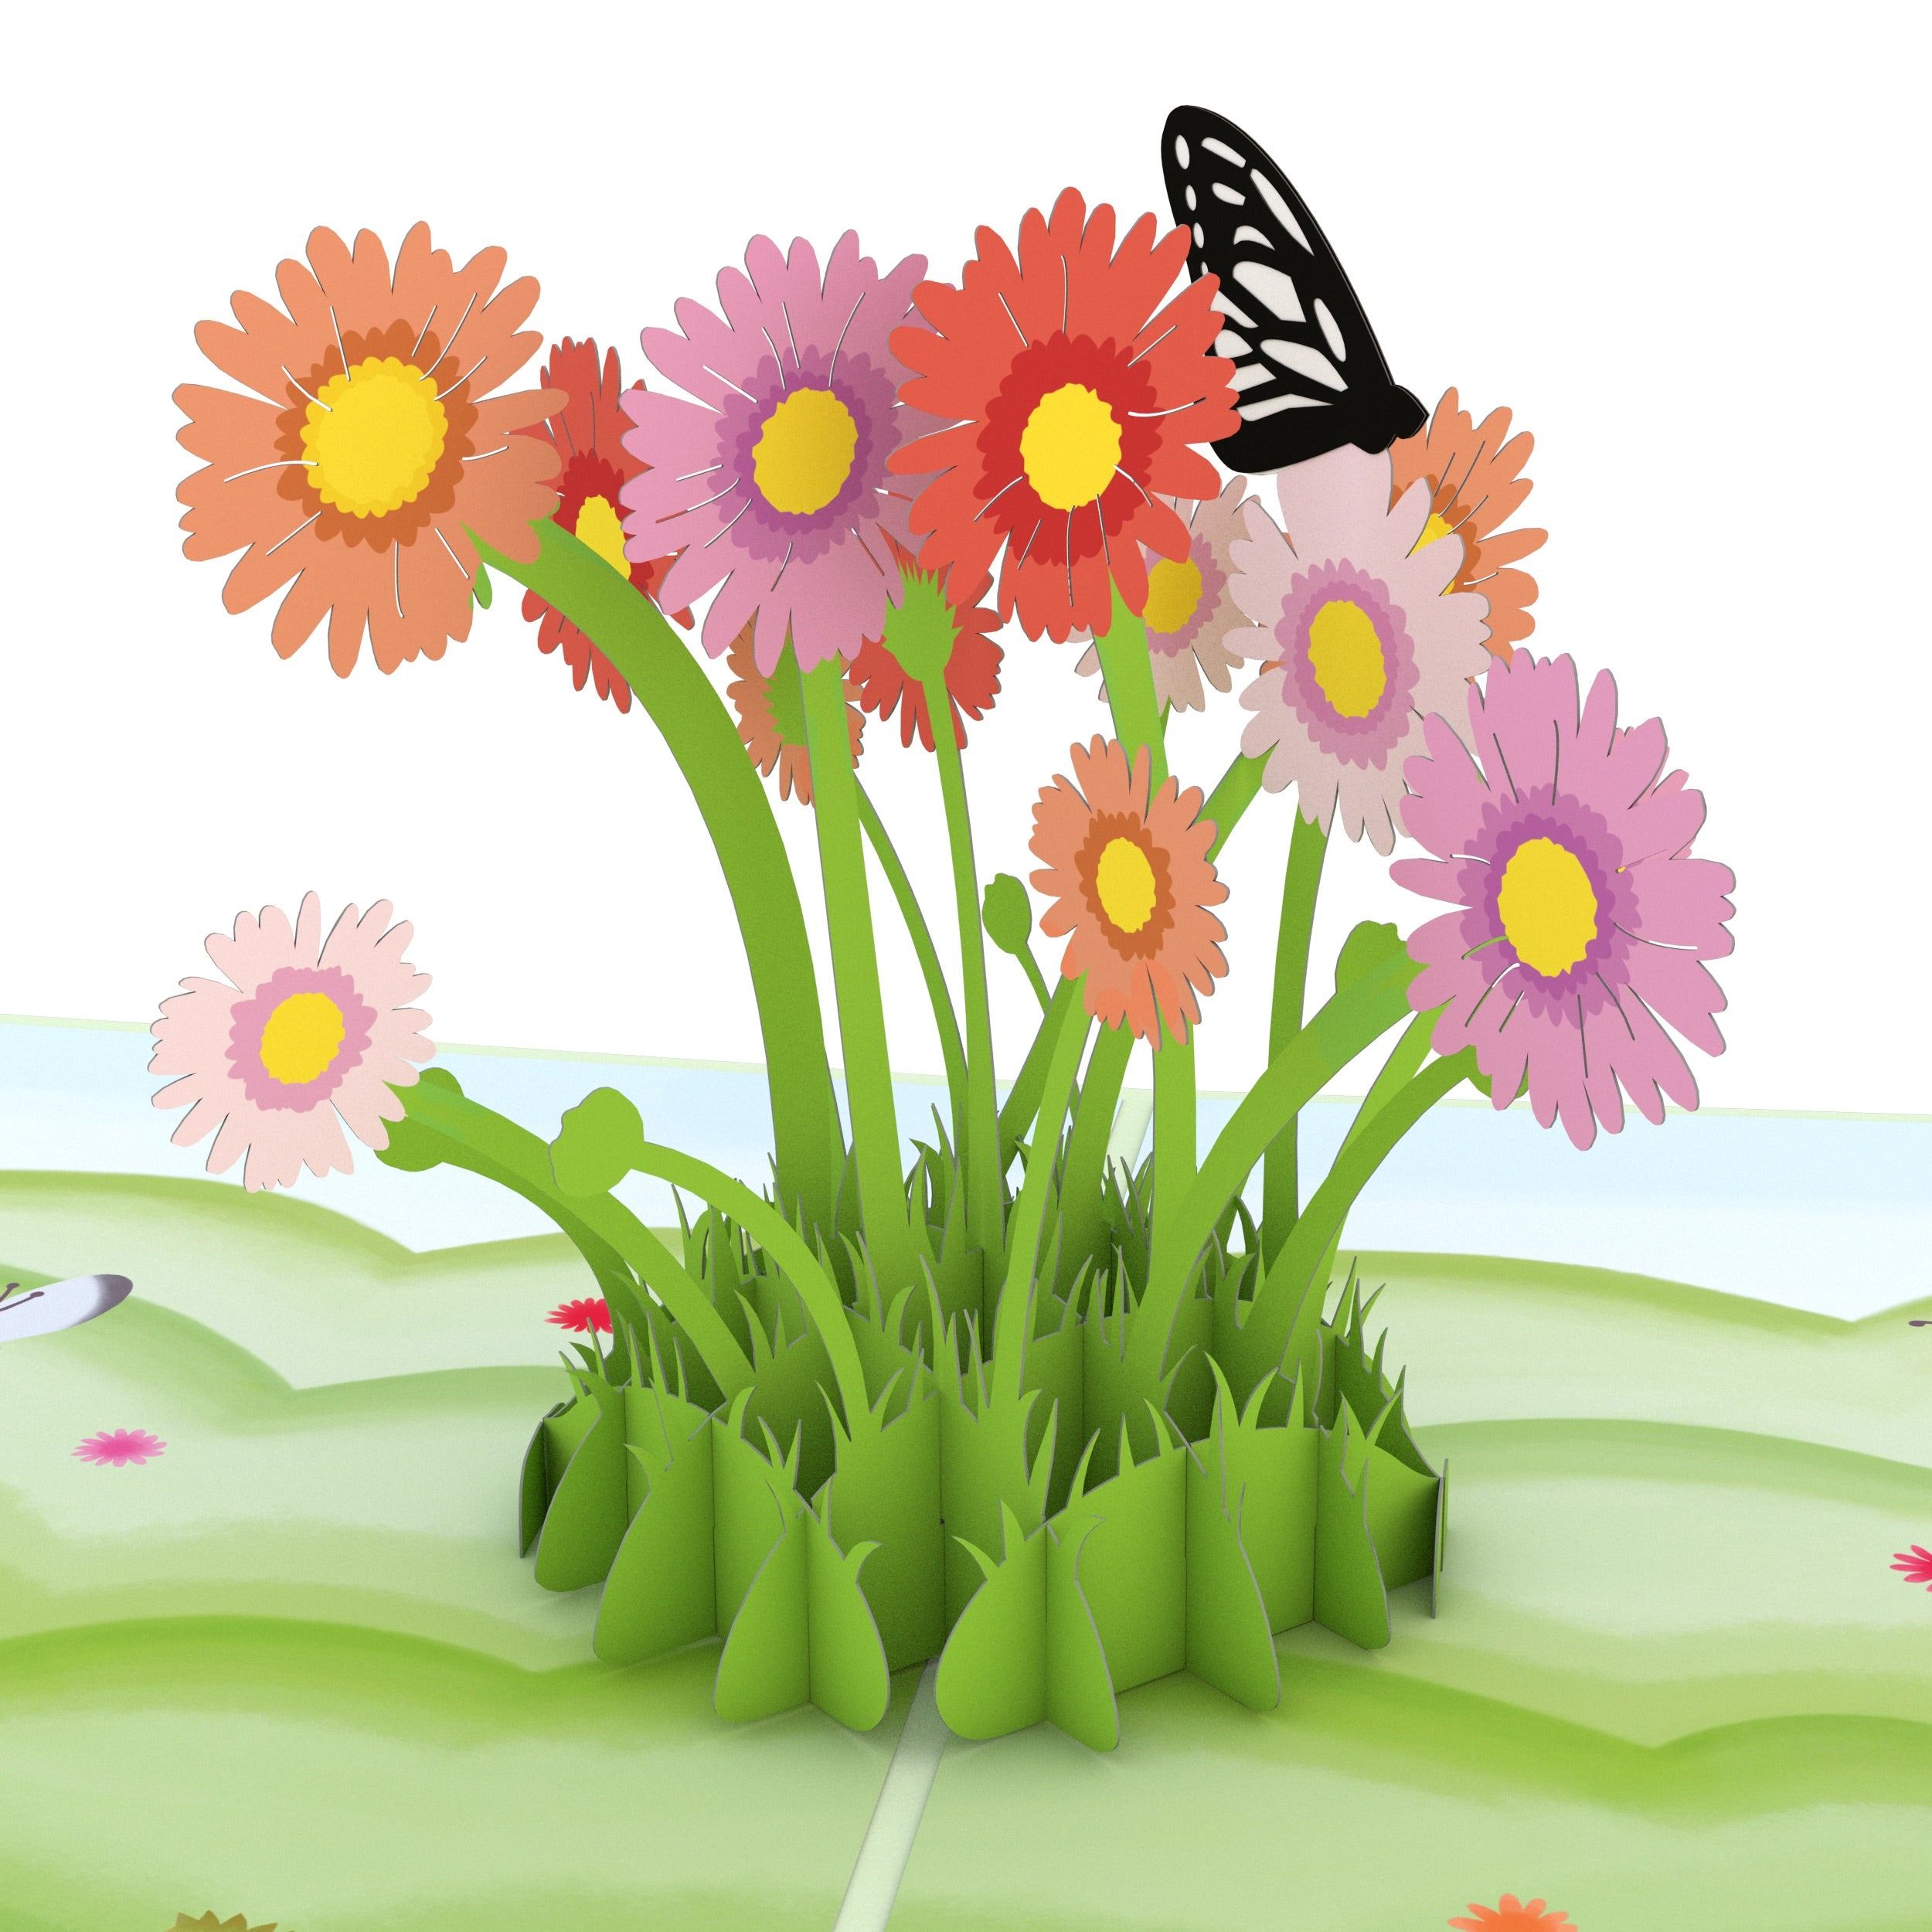 Easter Daisy Patch Pop Up Card